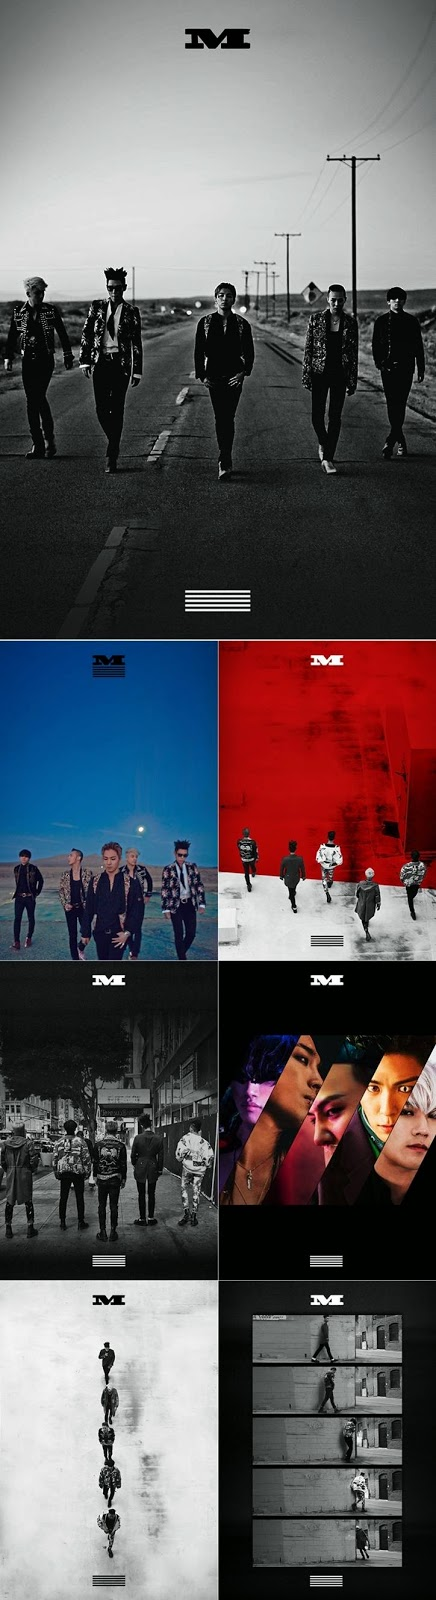 Romanization Hangul english translation Bigbang M Big Bang Loser Music Video Lyrics Photo G Dragon TOP G-Dragon T.O.P Taeyang Daesung Seungri YG Entertainment MADE SERIES M Hangul Romanization enjoy korea hui k-pop